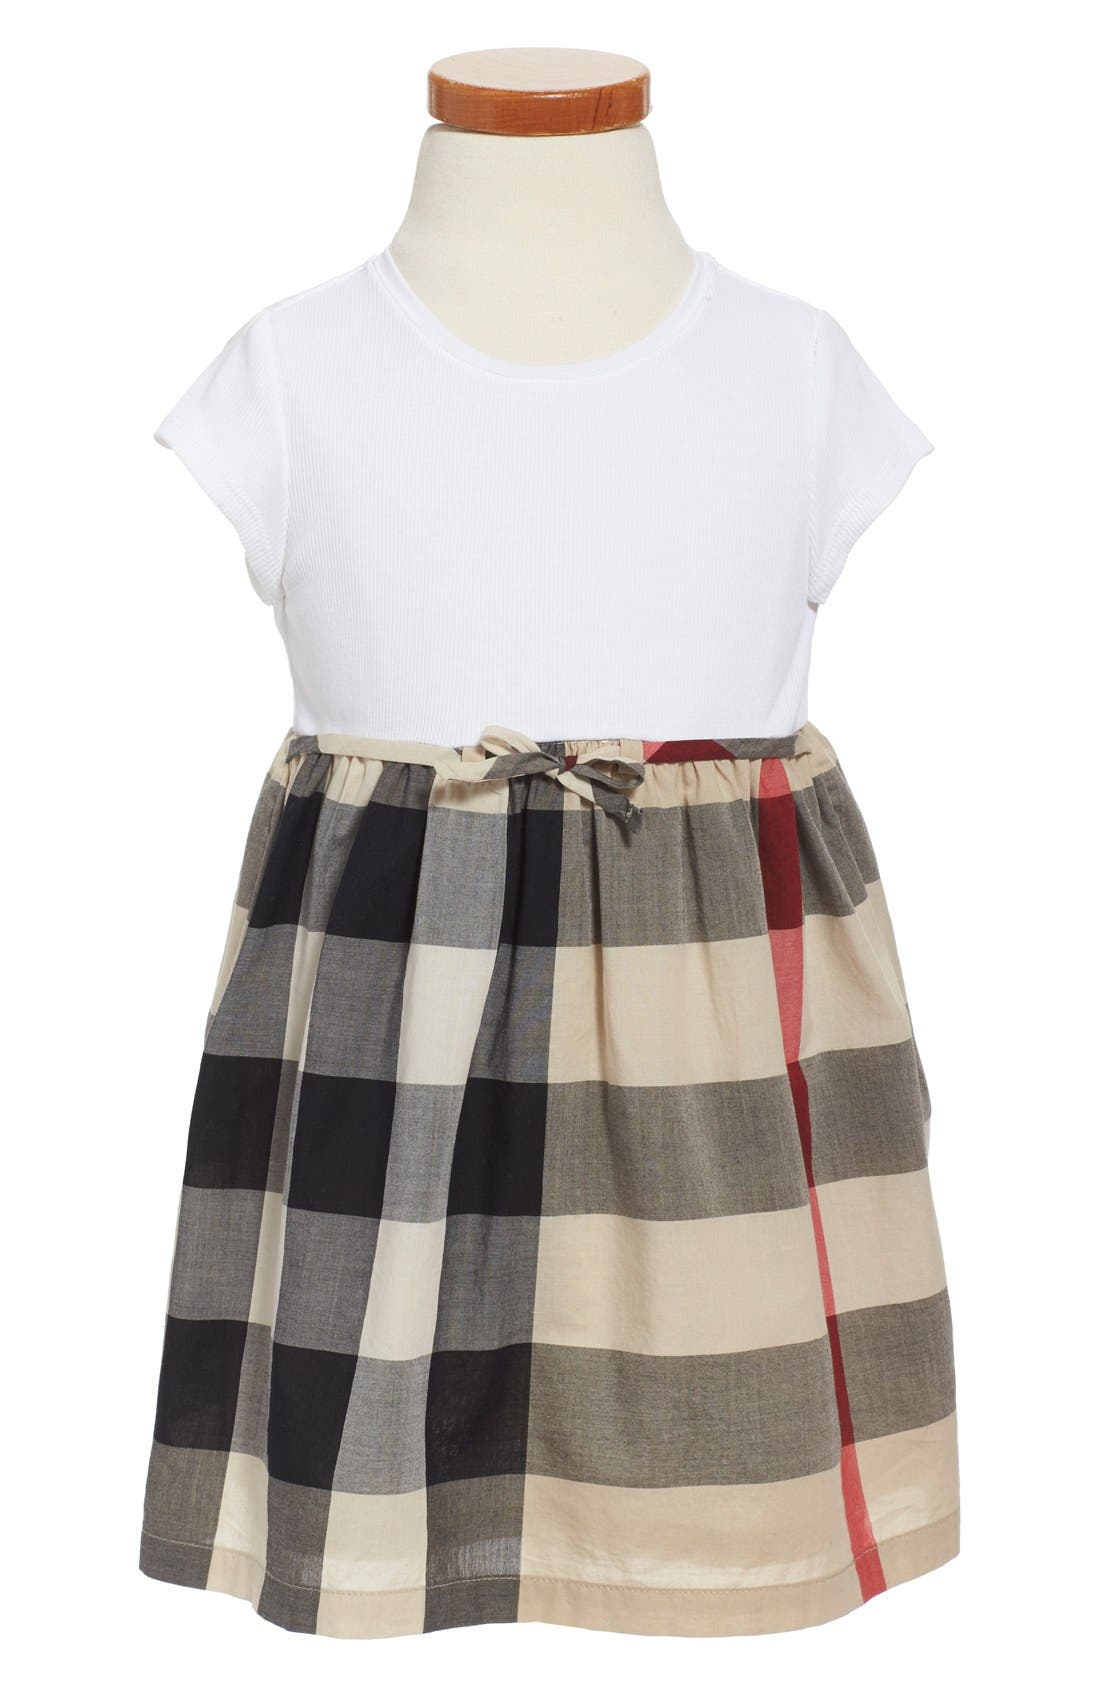 Alternate Image 1 Selected - Burberry 'Mini Rosey' Check Cotton Dress (Toddler Girls)